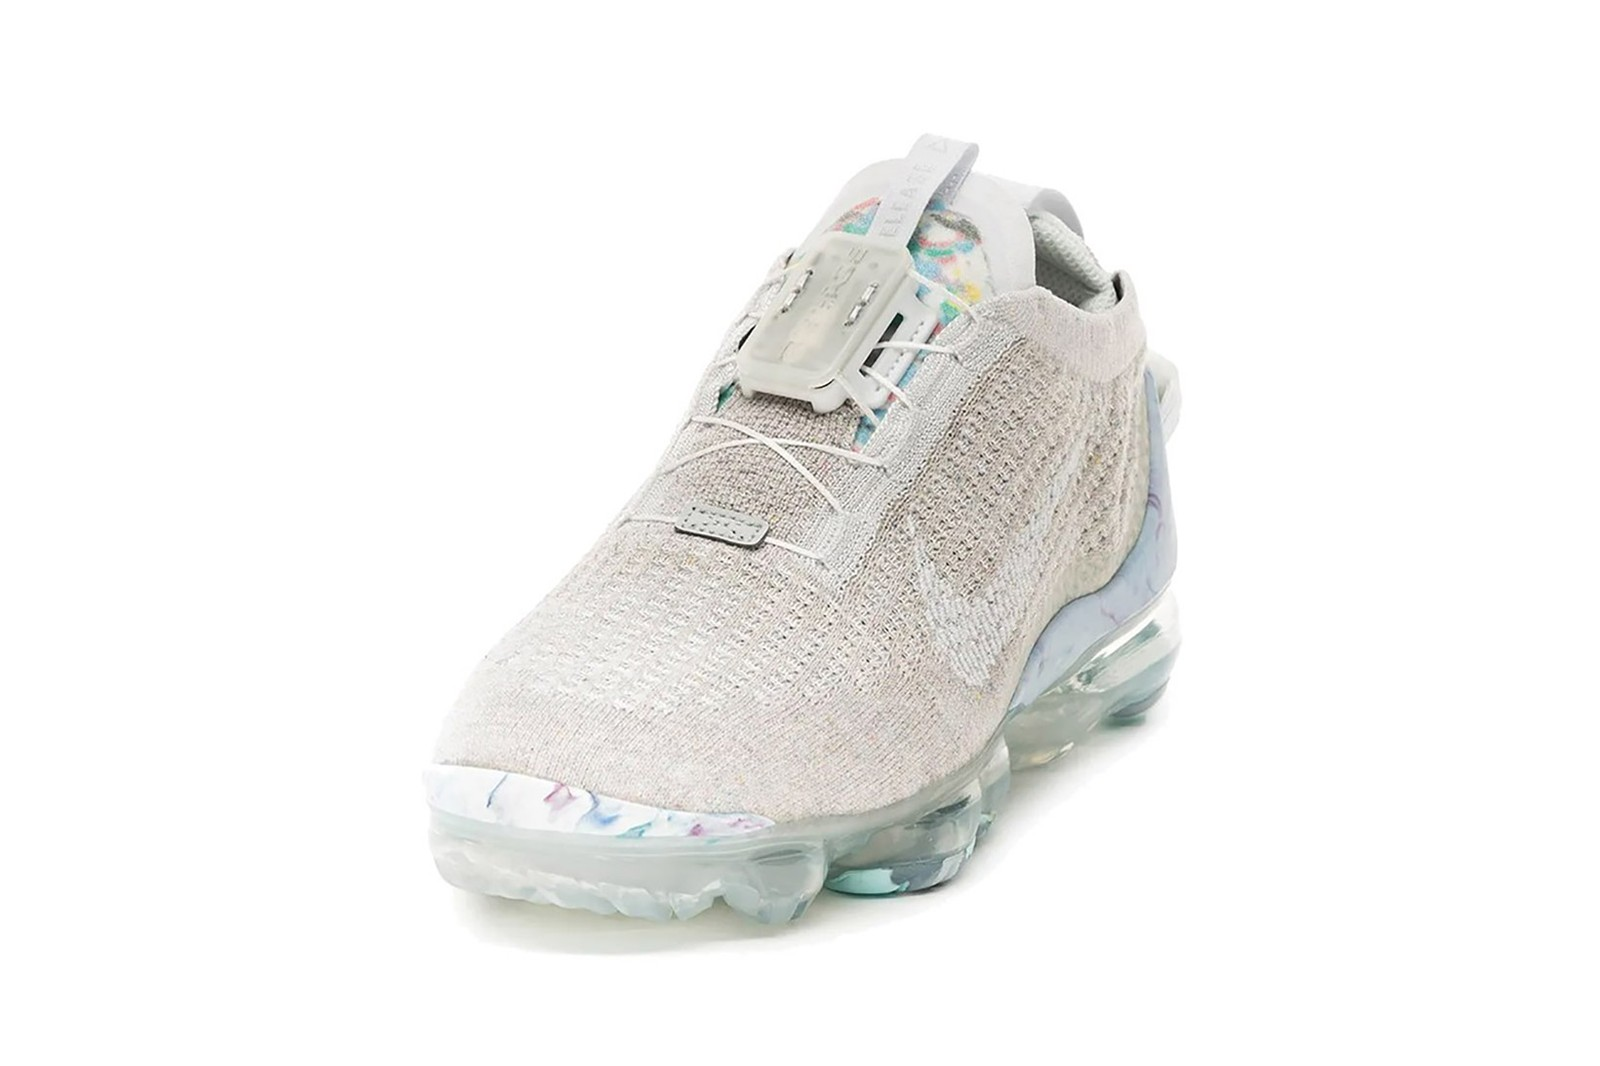 nike air vapormax 2020 sustainable sneakers white pastel blue purple colorway sneakerhead shoes footwear